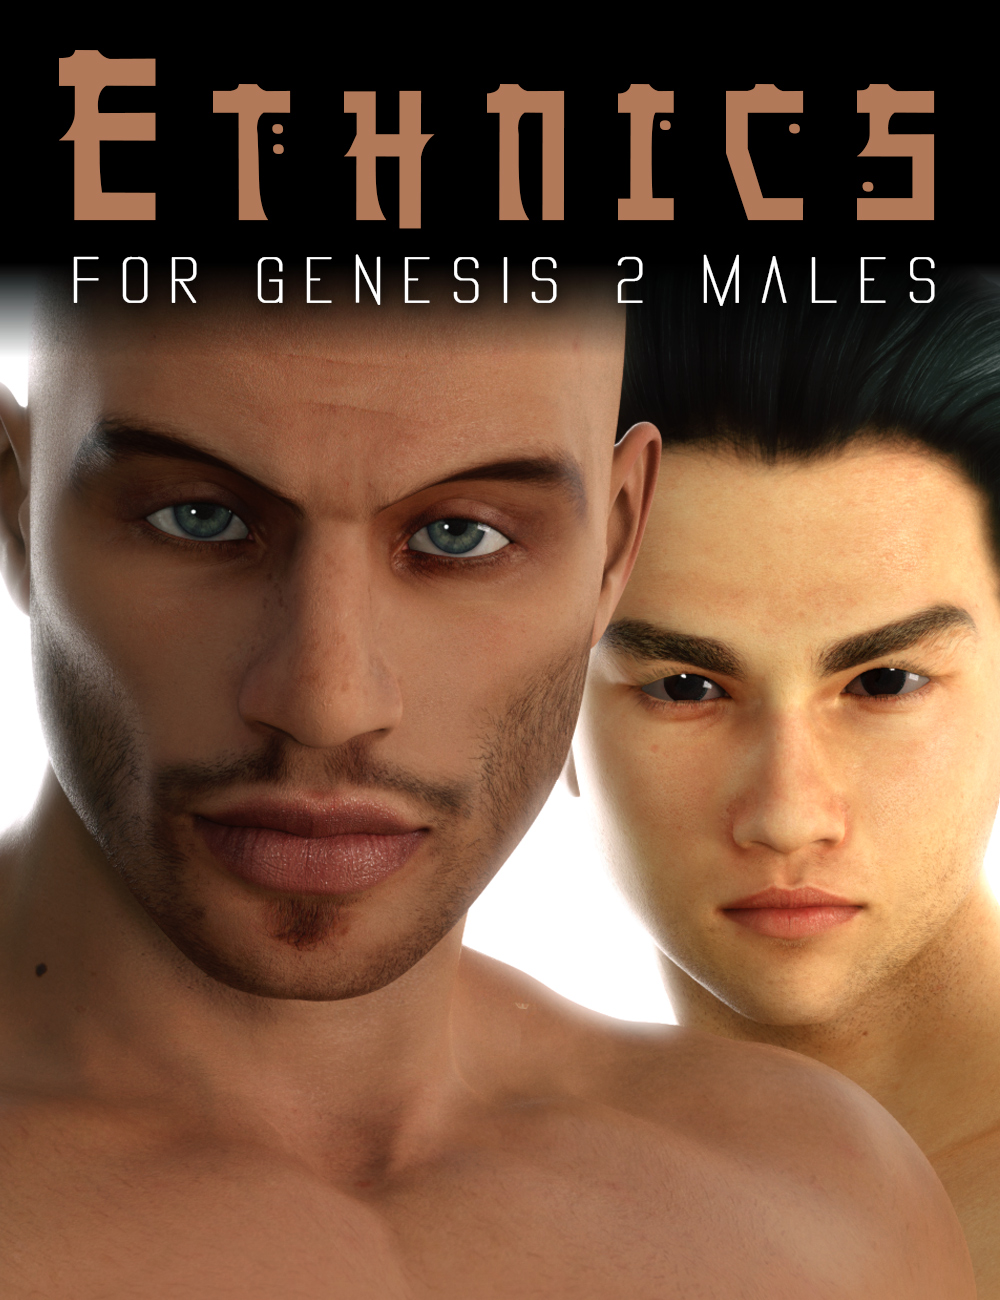 Ethnics for Genesis 2 Male(s) by: Cake One, 3D Models by Daz 3D